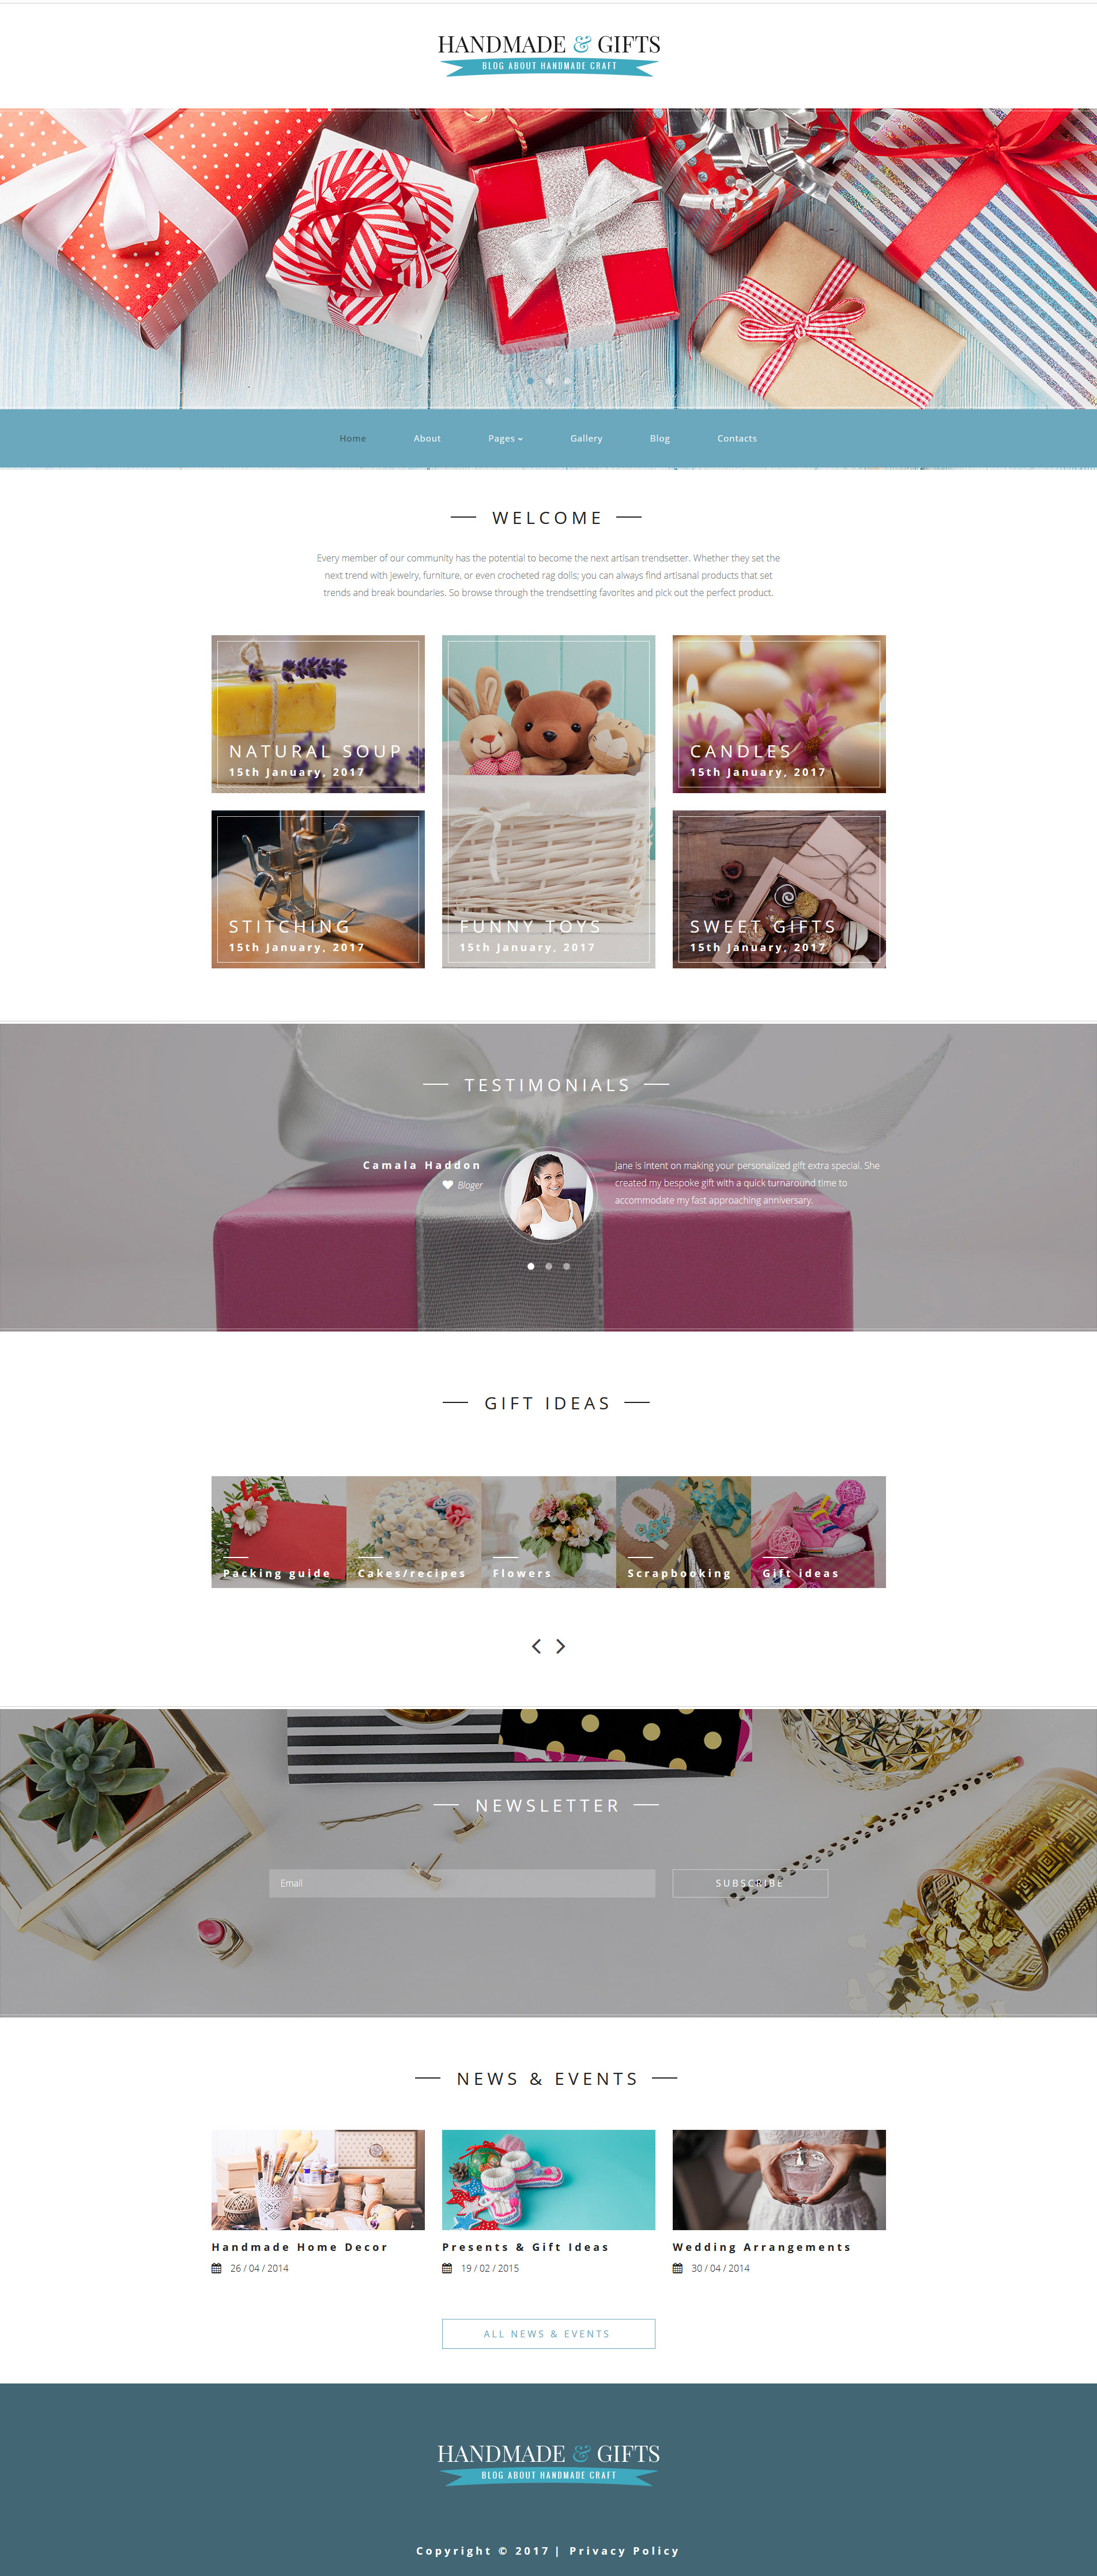 Handmade & Gifts - Crafts Blog and Gift Store Template Joomla №62277 - captura de tela